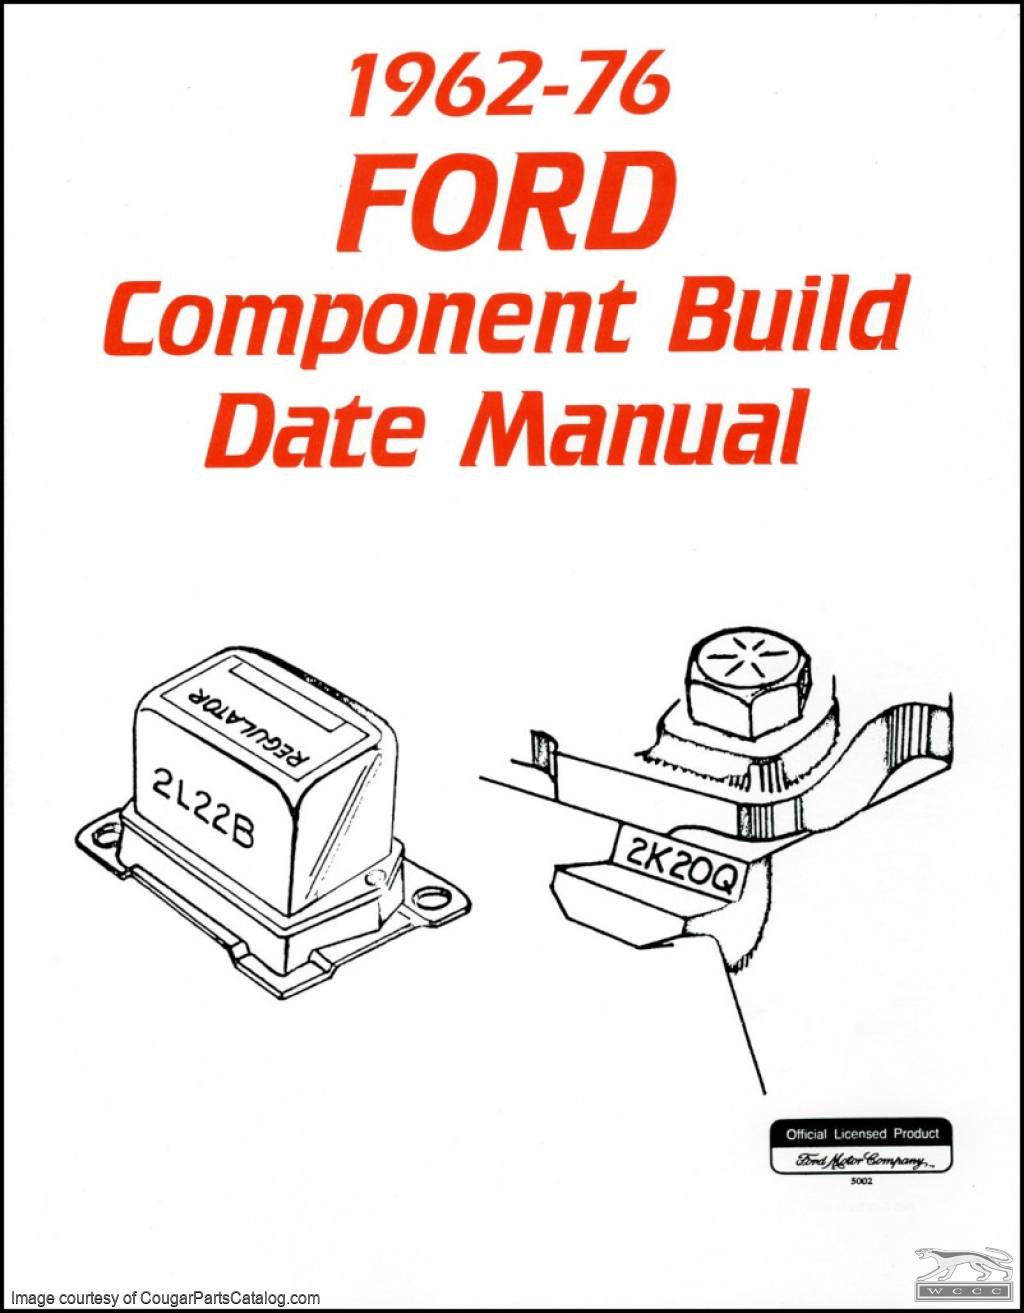 Manual - Component Build Date - Repro ~ 1967 - 1973 Mercury Cougar / 1964 - 1973 Ford Mustang / 1962 - 1976 All Mercury / 1962 - 1976 All Ford - 25951